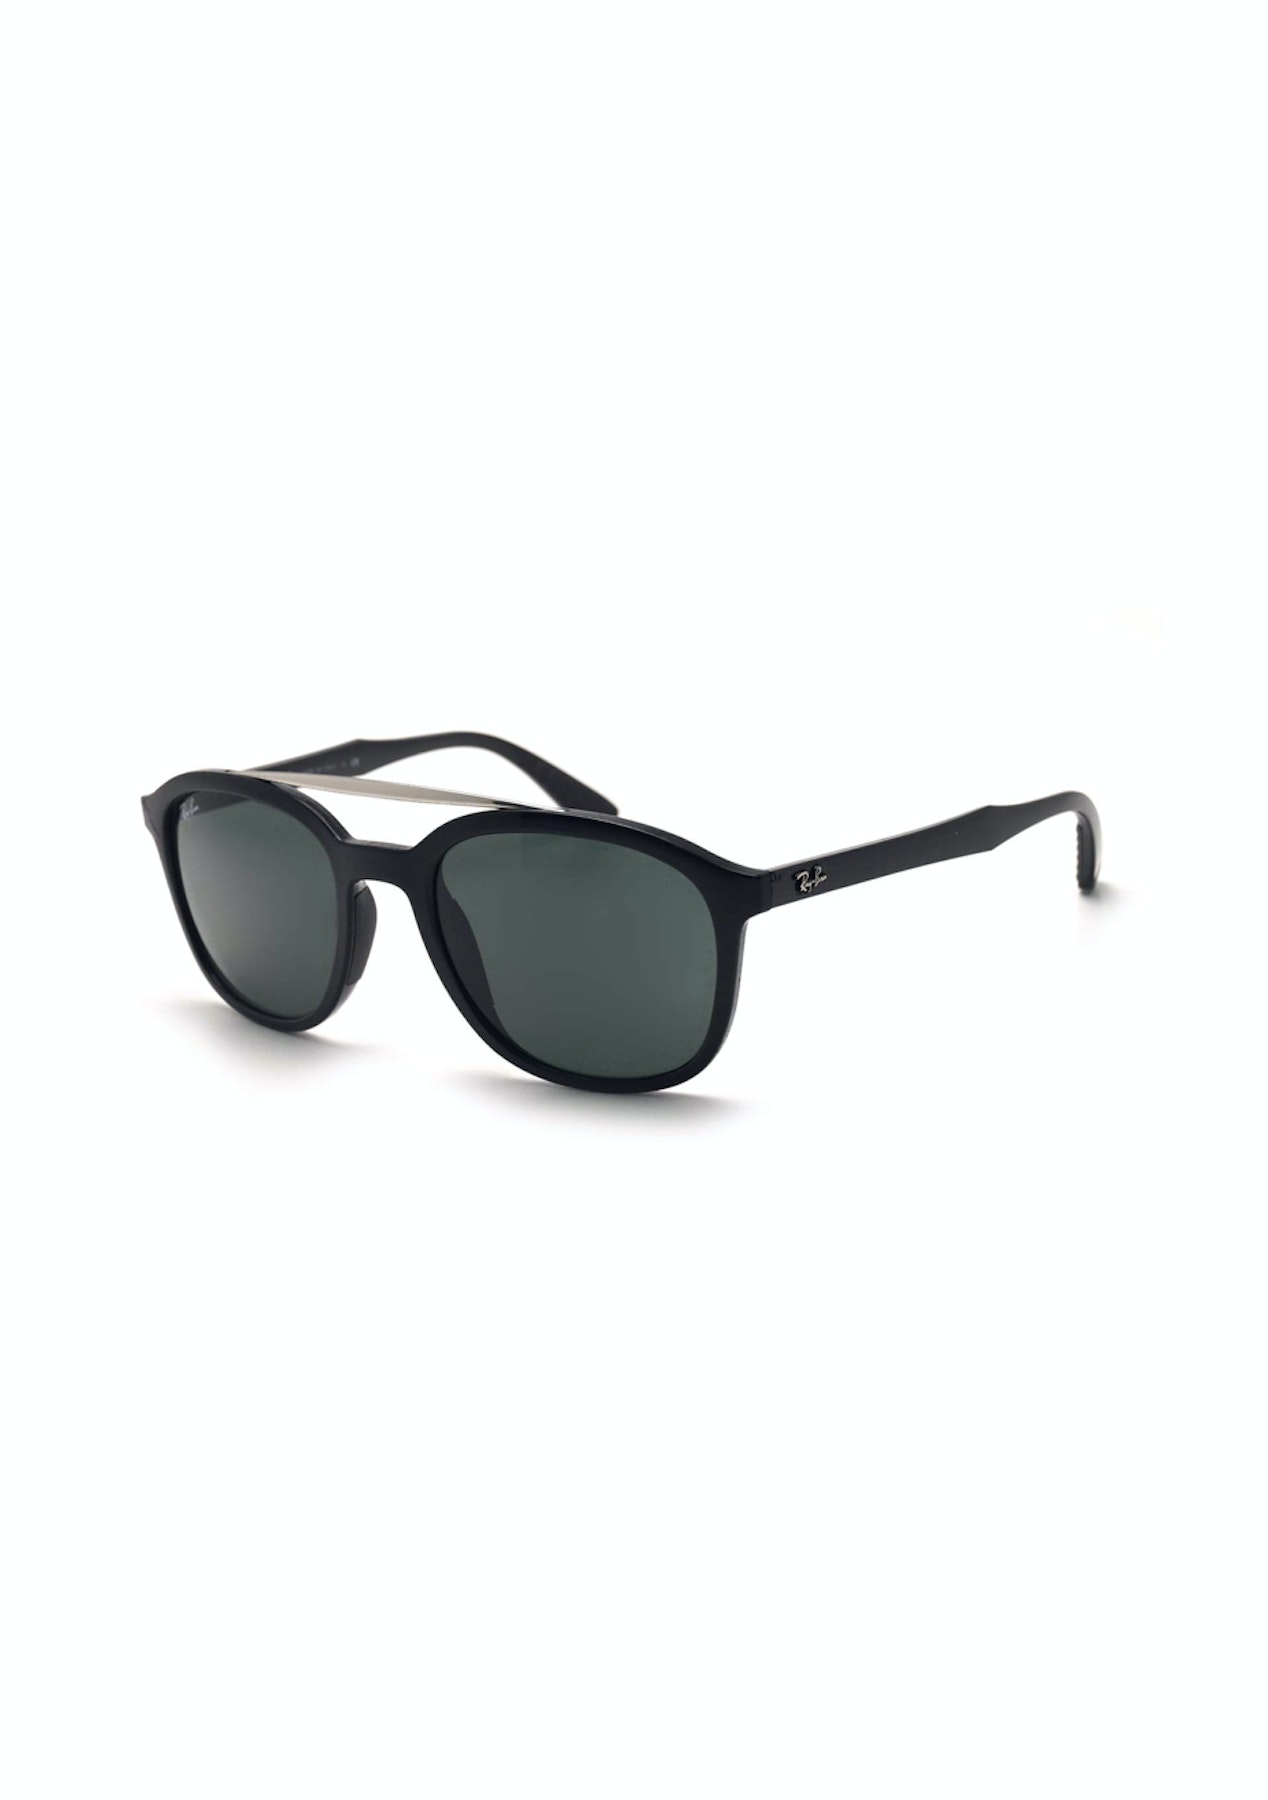 d863573f16e Ray-Ban RB4290 Black Green Sunglasses - Onceit s Gone It s Gone - Onceit